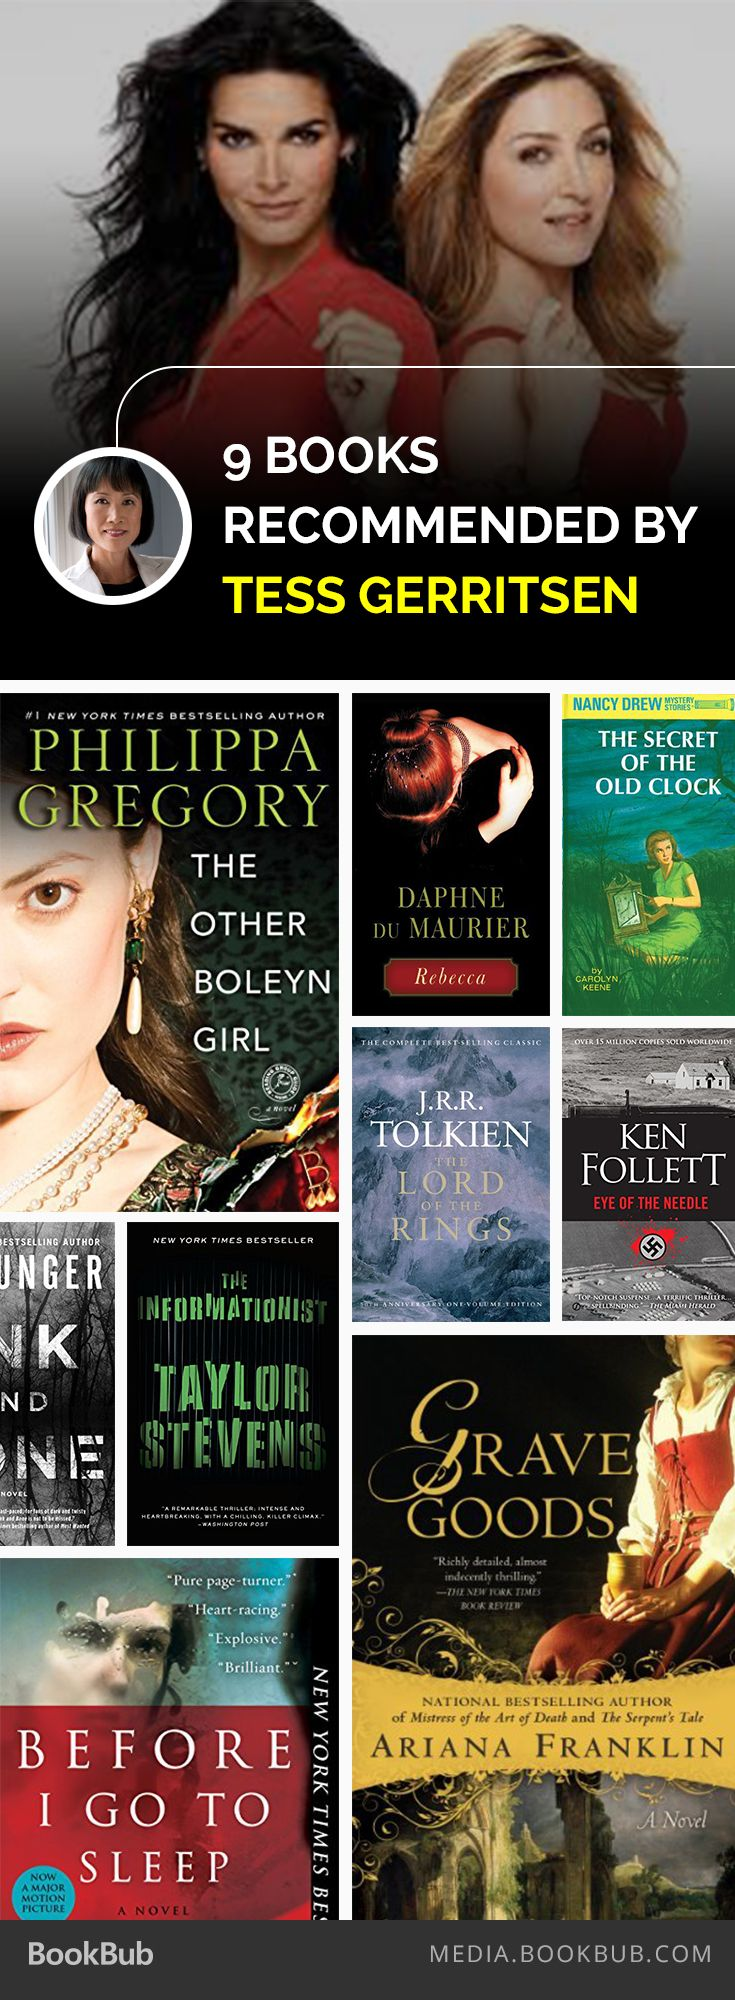 9 books recommended by Rizzoli & Isles author Tess Gerritsen.